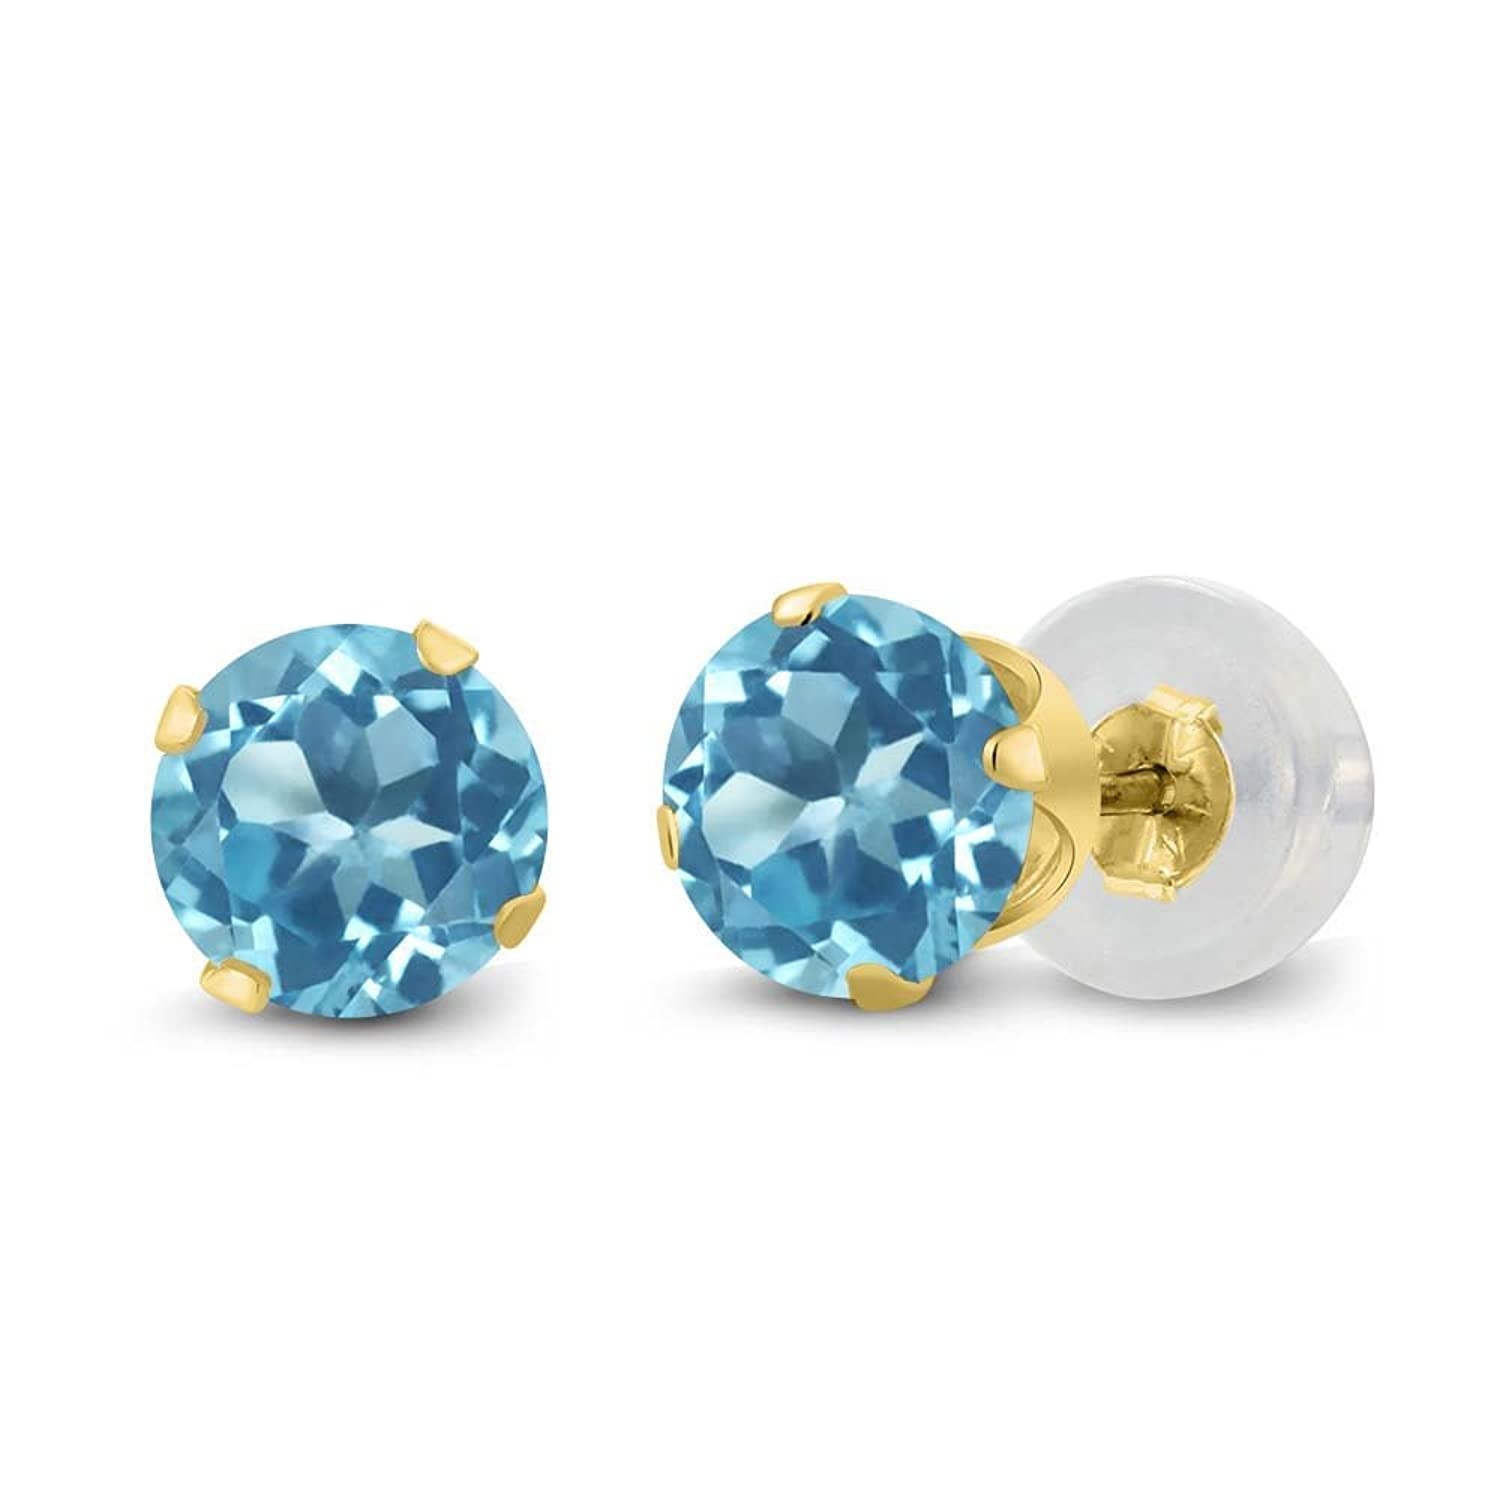 earring silver stu stud designs blue topaz wood natalie runaway earrings romantic